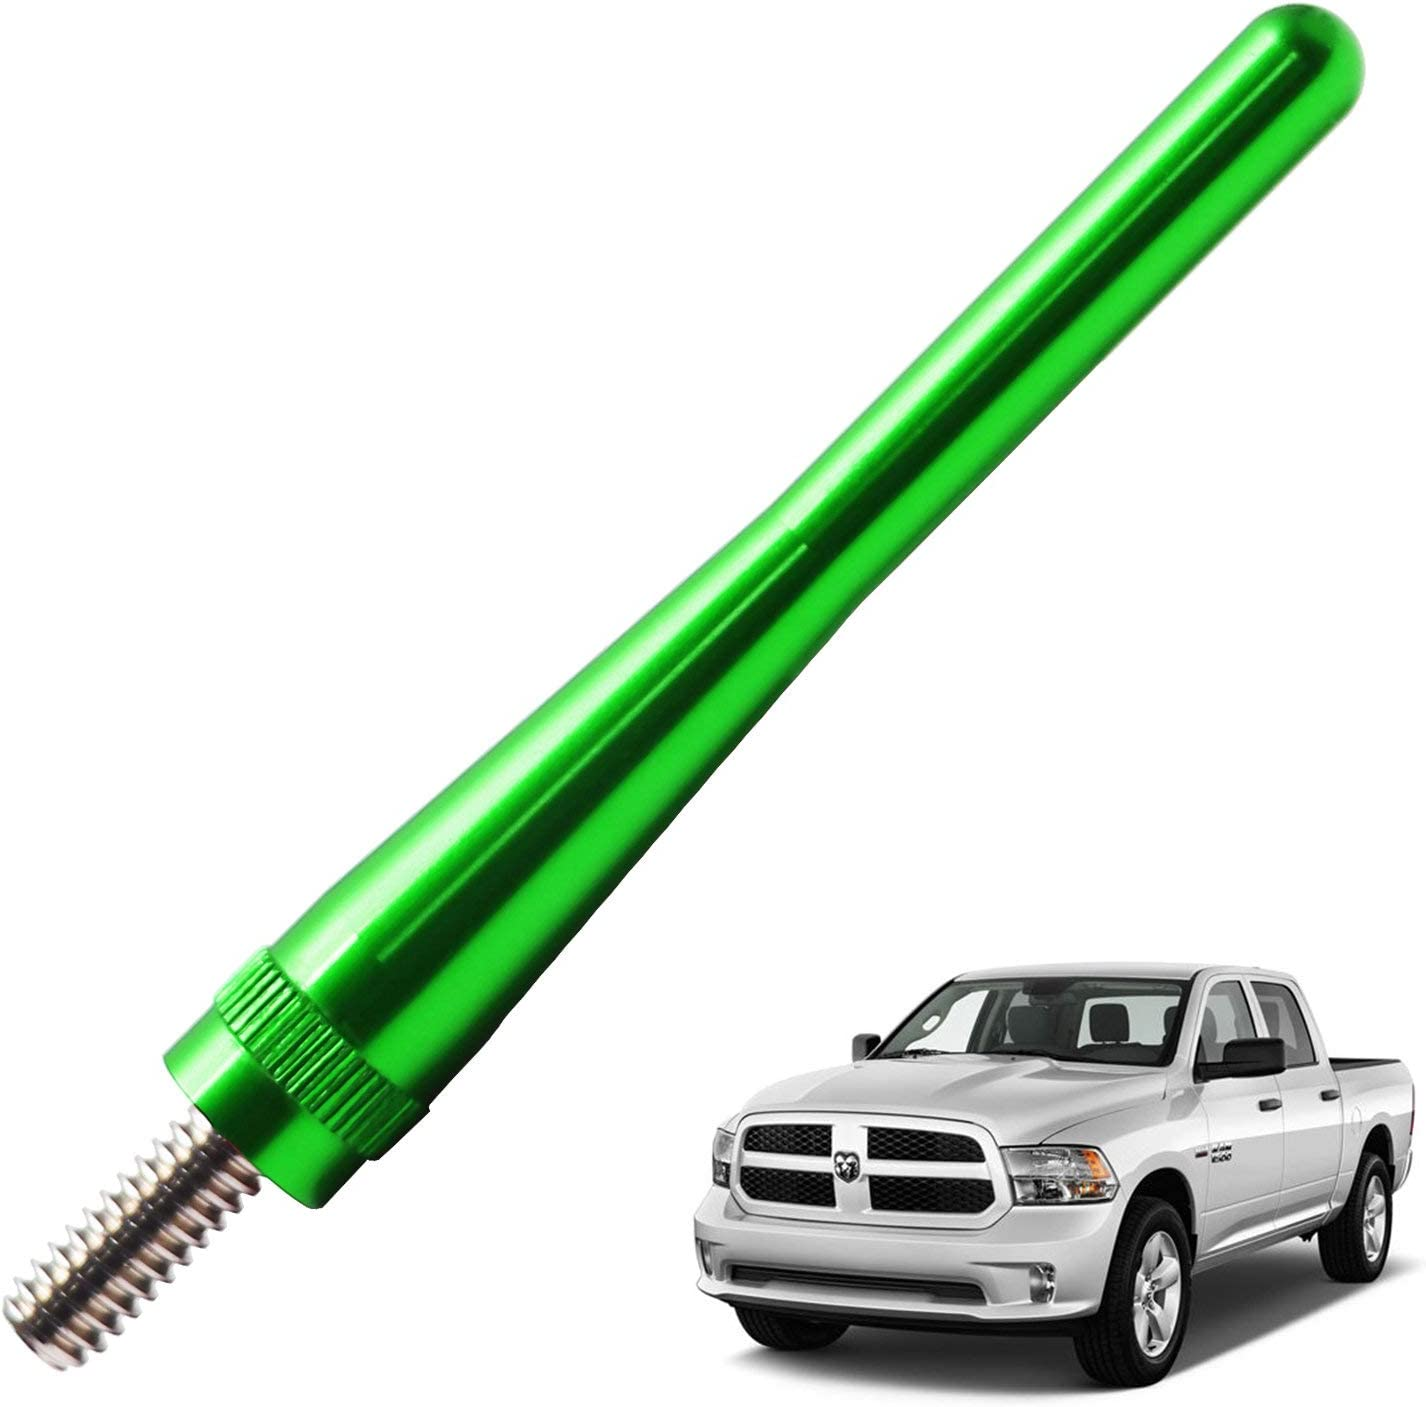 JAPower Antenna Replacement Fit for Dodge RAM 1500 2012-2018 Vehicles 3.2 inches-Blue